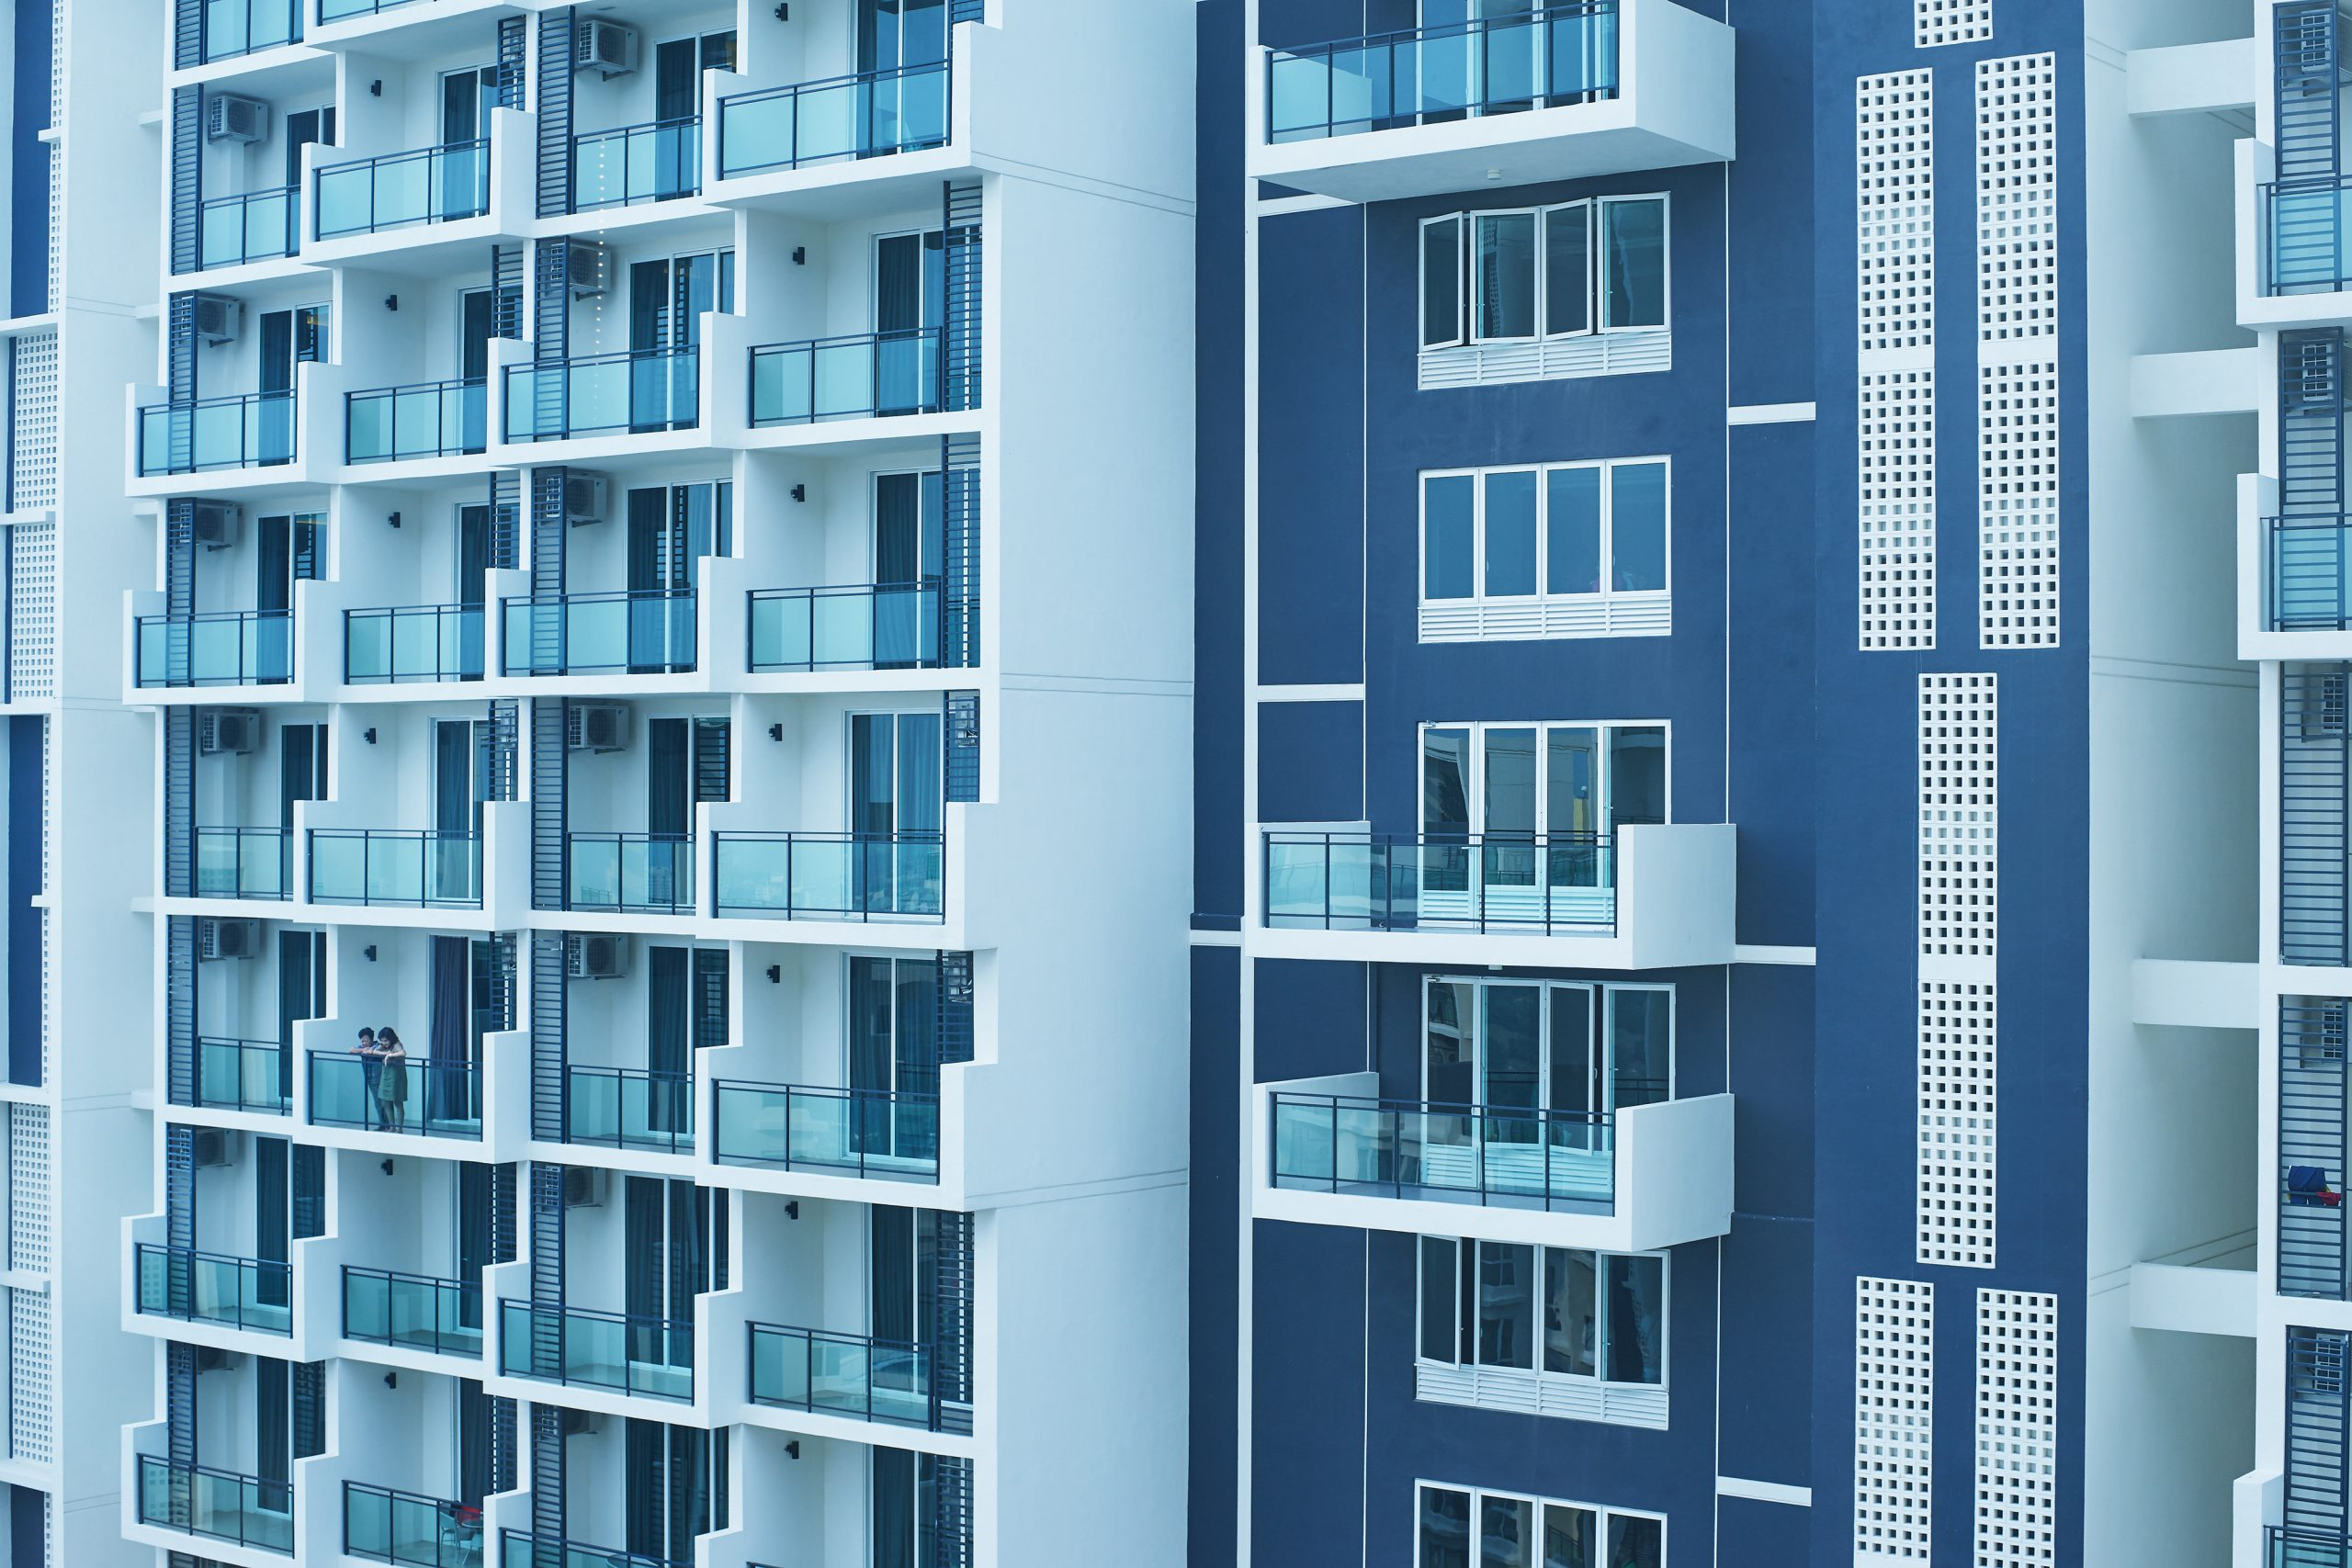 Multifamily Aug 2020 by Donna Jean Coquilla